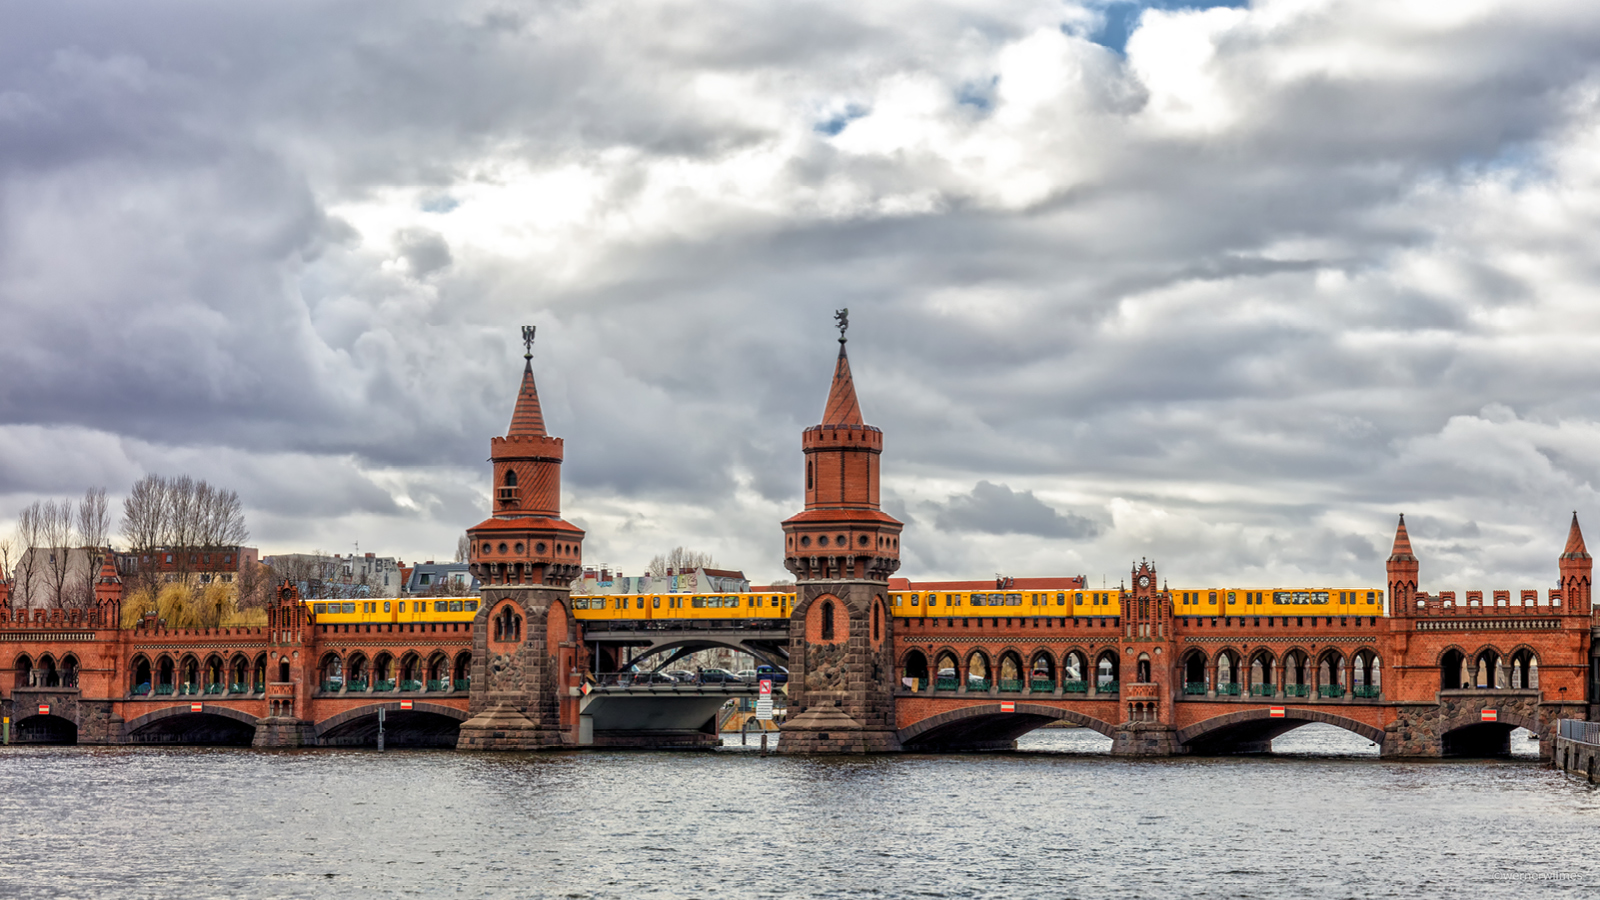 Alex liebt Berlin – Food & City Guide: Oberbaumbrücke